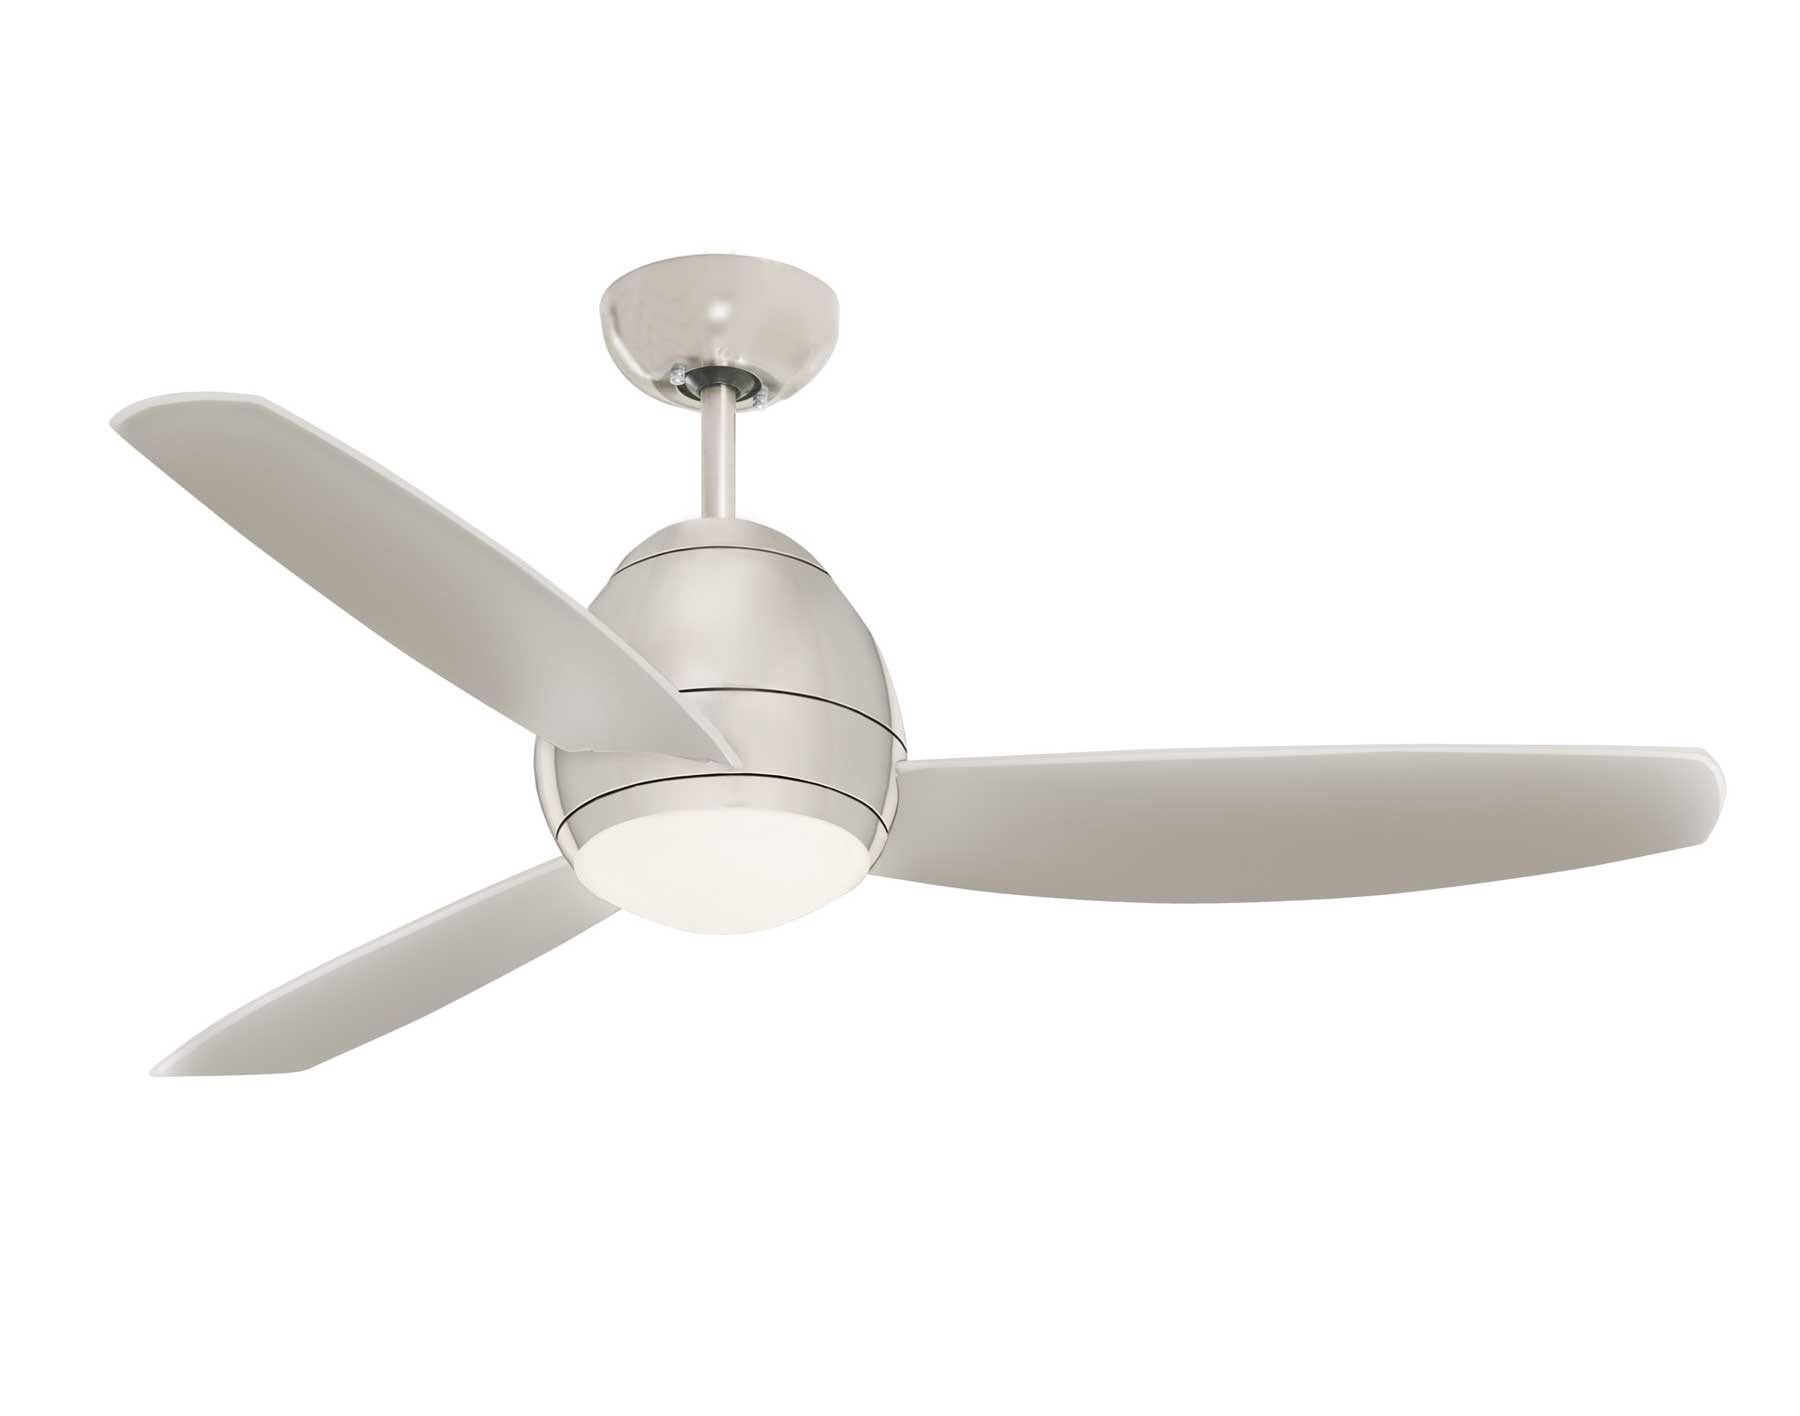 brushed steel avruc outdoor ceiling fan w light. Black Bedroom Furniture Sets. Home Design Ideas